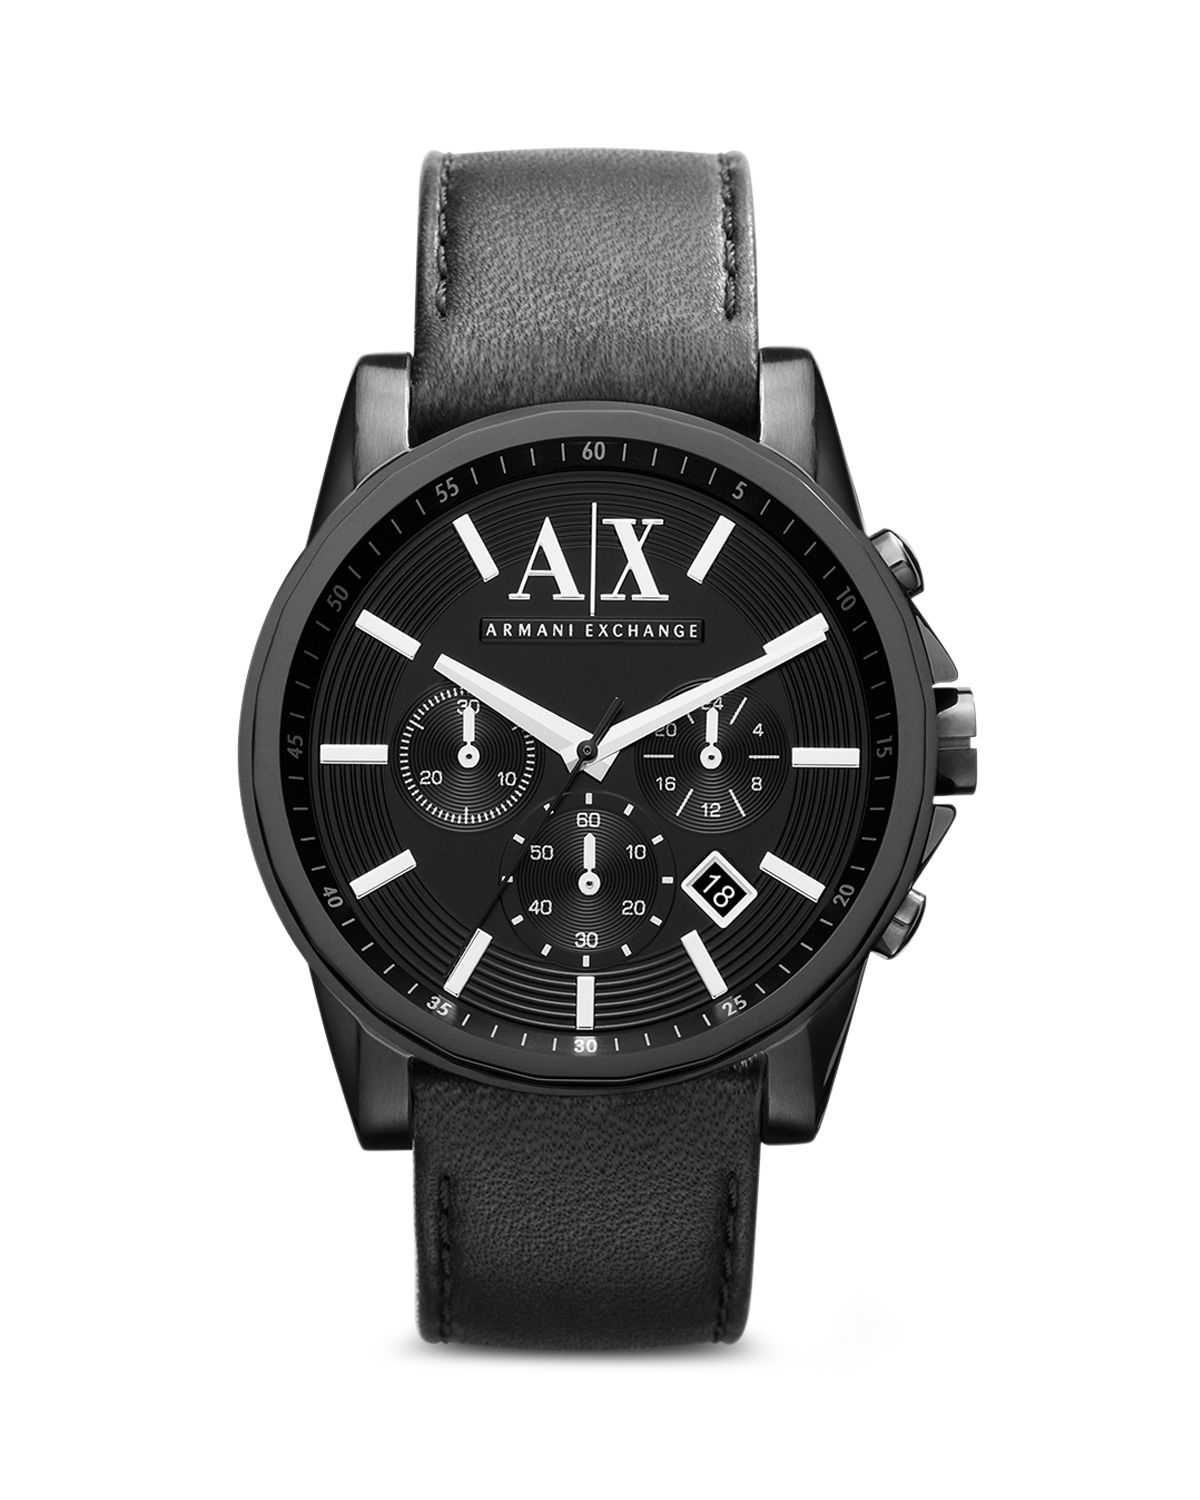 Armani exchange a x armani exchange leather strap chronograph watch 45mm in black for men lyst for Armani exchange watches